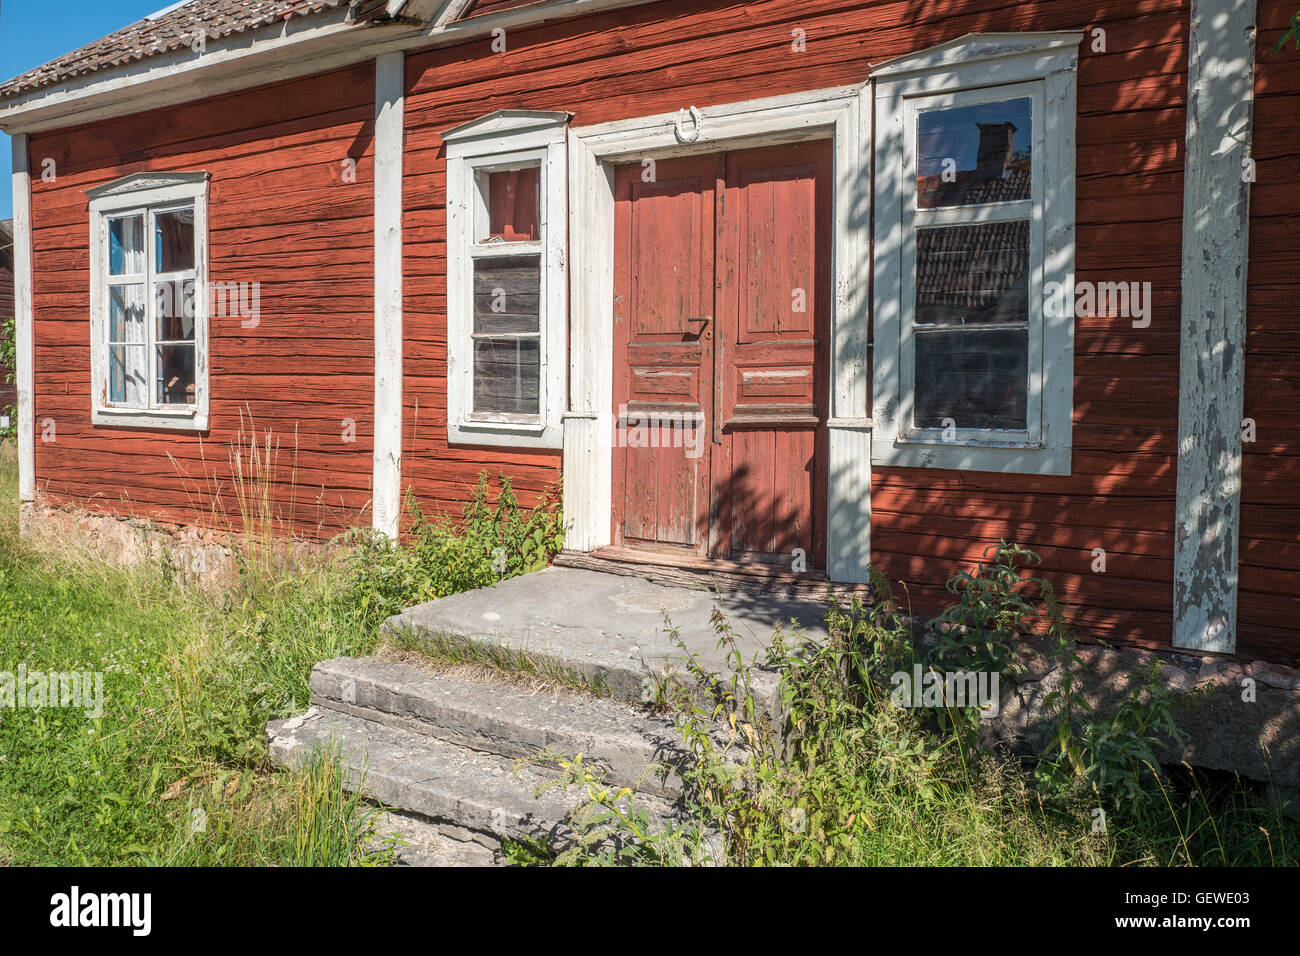 Regna – a partly deserted village in the countryside of Ostergotland, Sweden - Stock Image